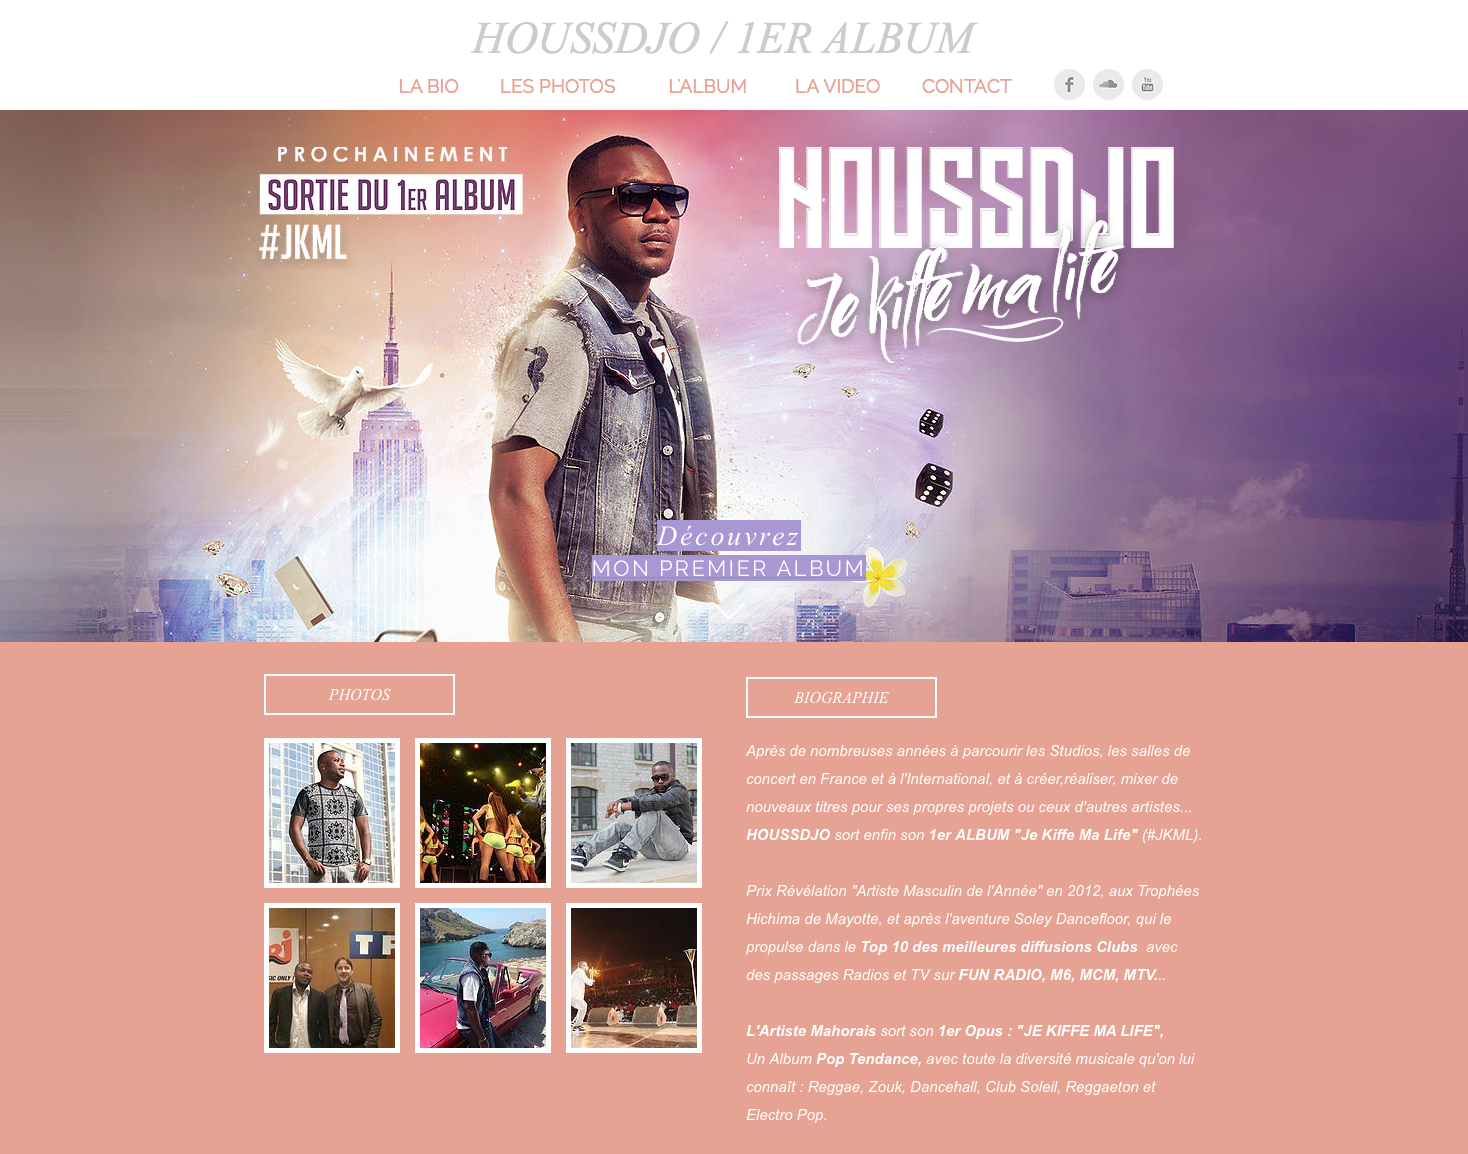 site web houssdjo album